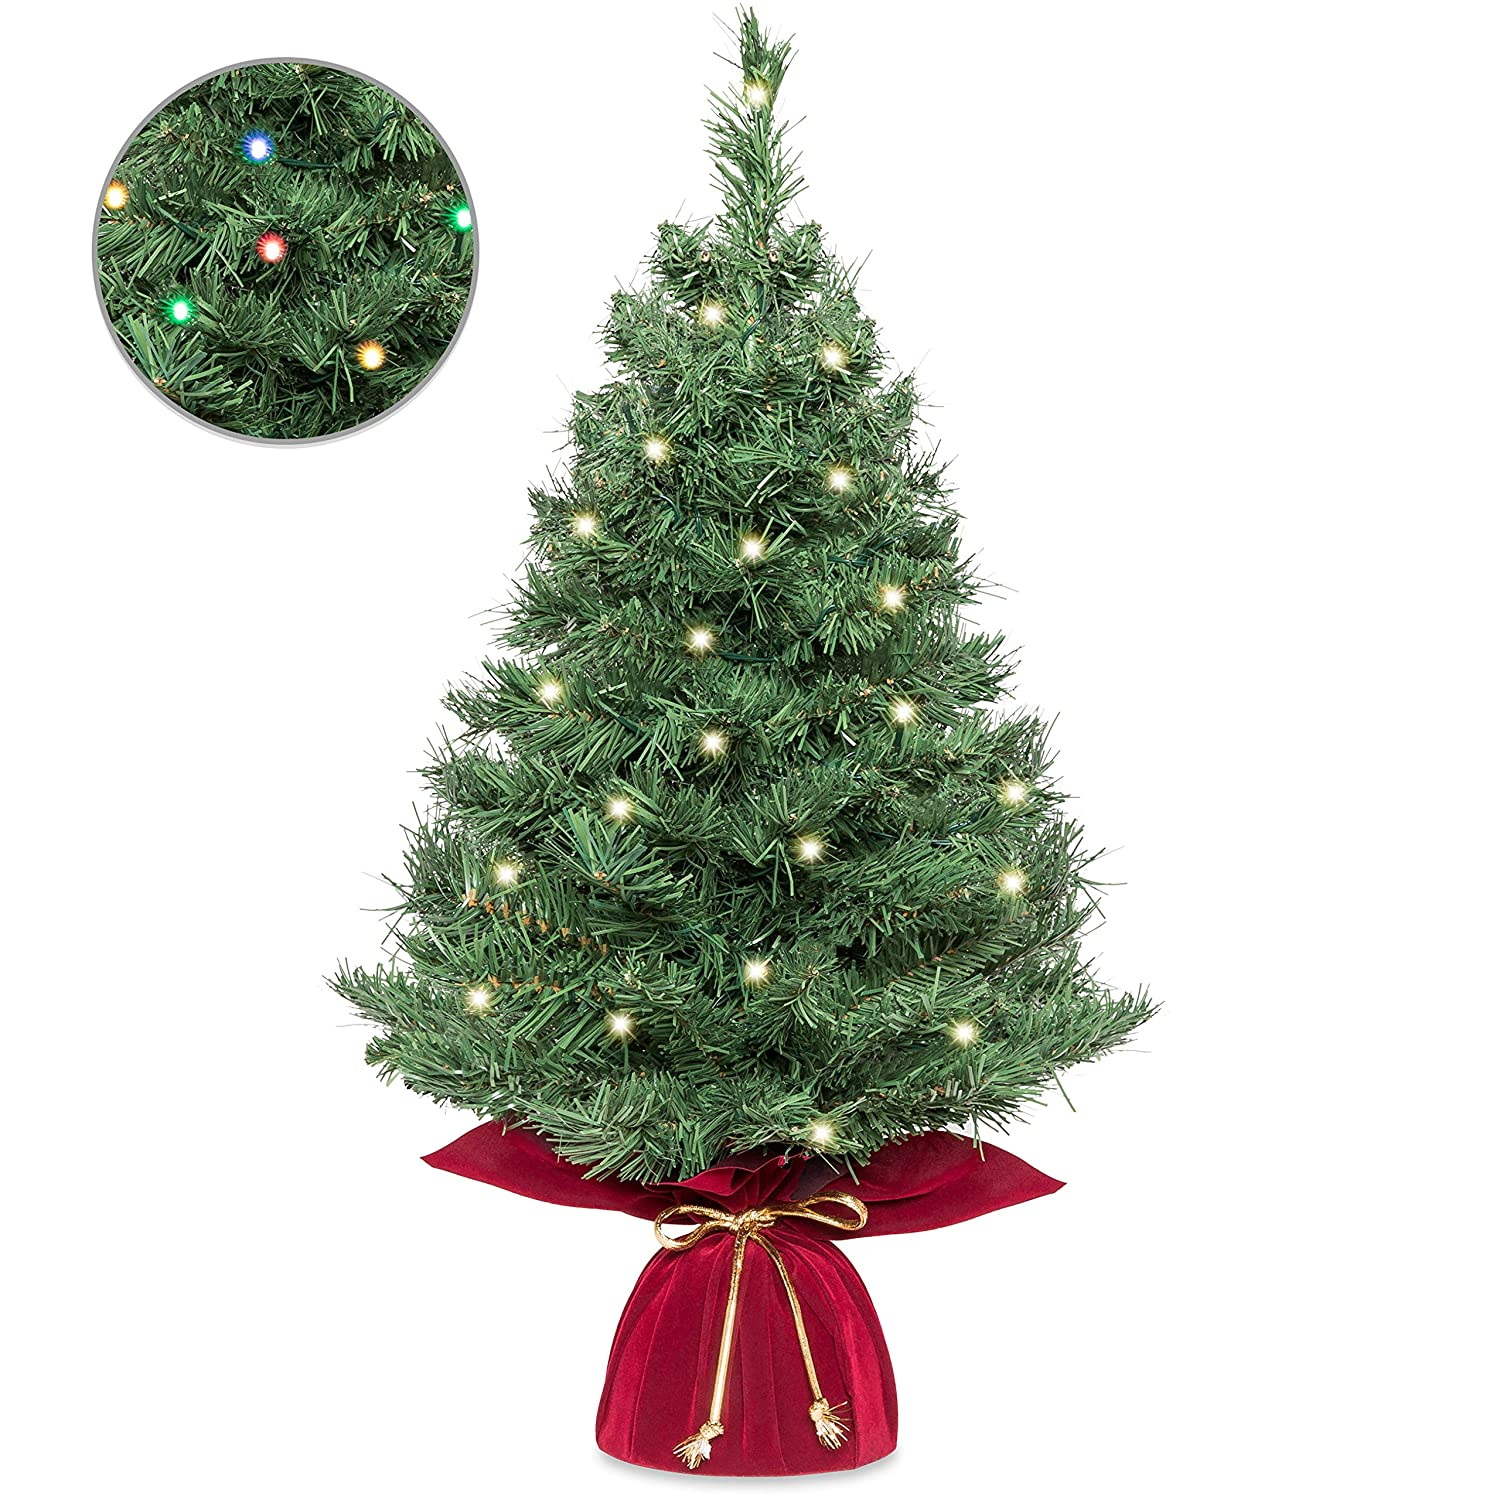 Best Choice Products 26in Multifunctional Cordless Pre-Lit Tabletop Artificial Fir Christmas Tree w/ 35 Warm White and Multicolor LED Lights, 5 Light Functions, Timer, Battery Box - Green